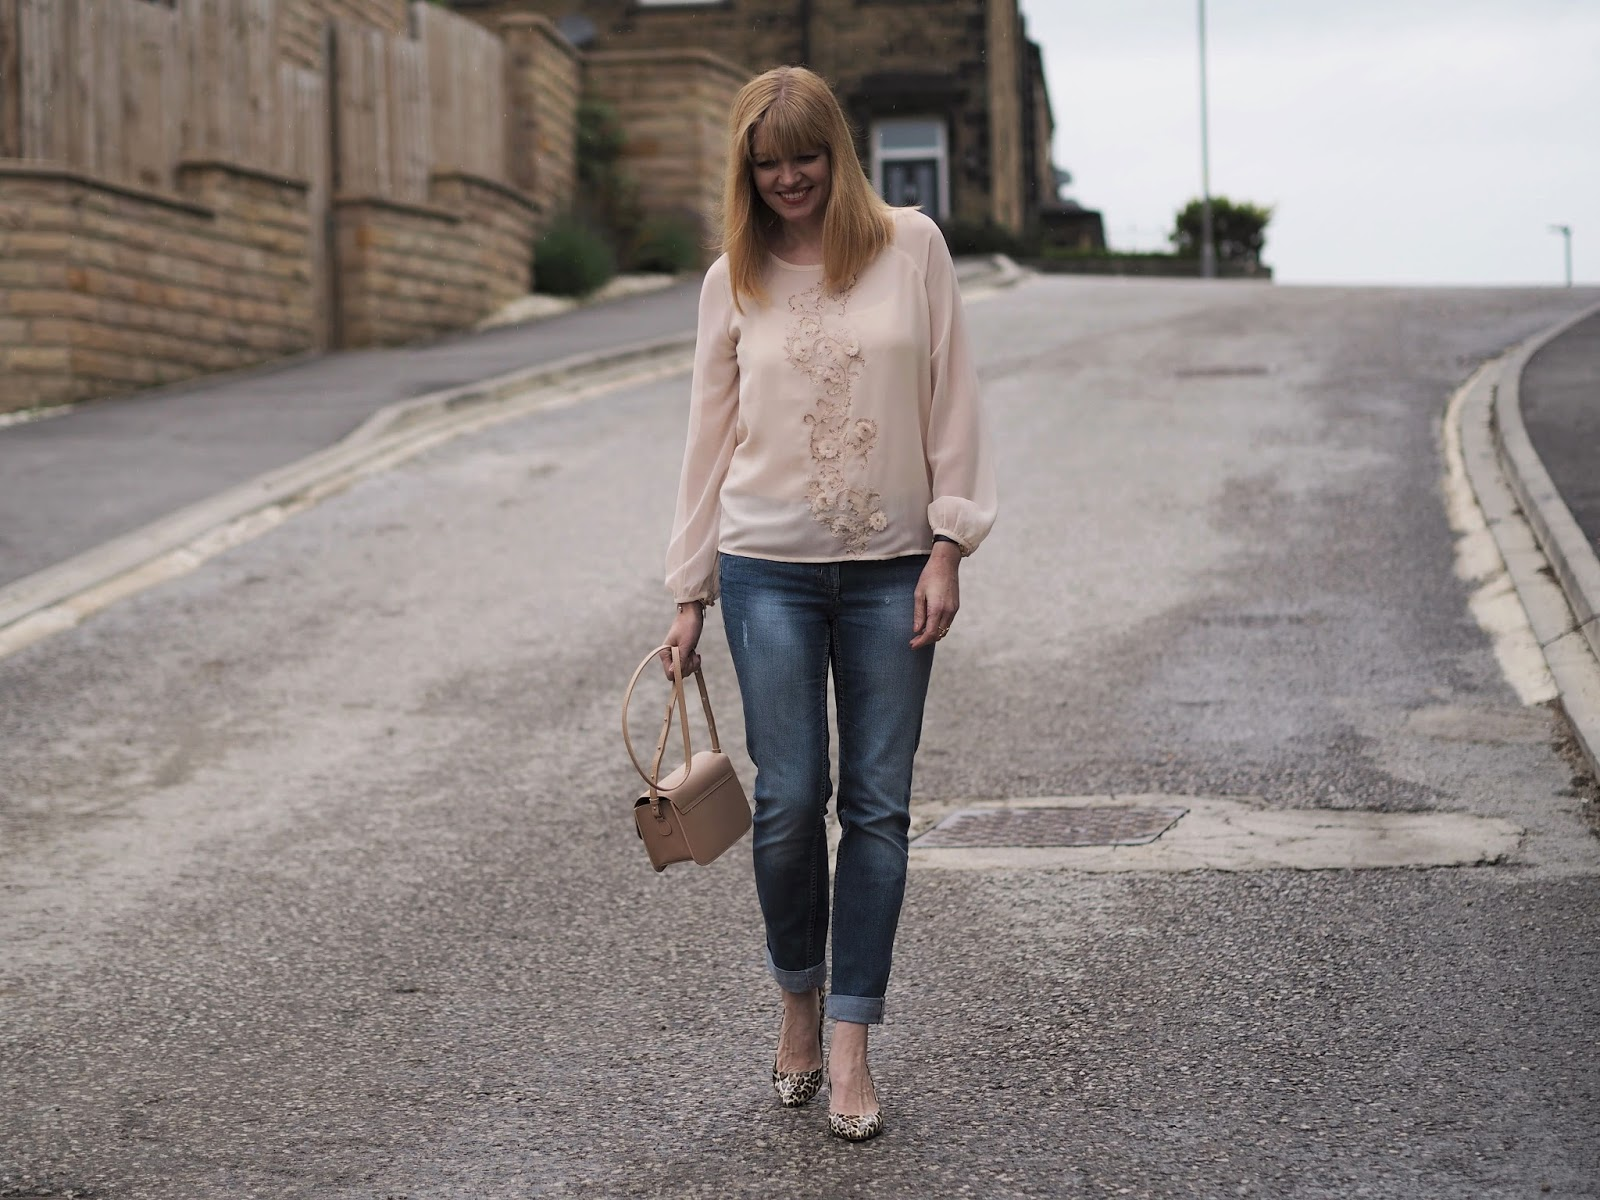 Blush embellished top, boyfriend jeans and leopard print shoes